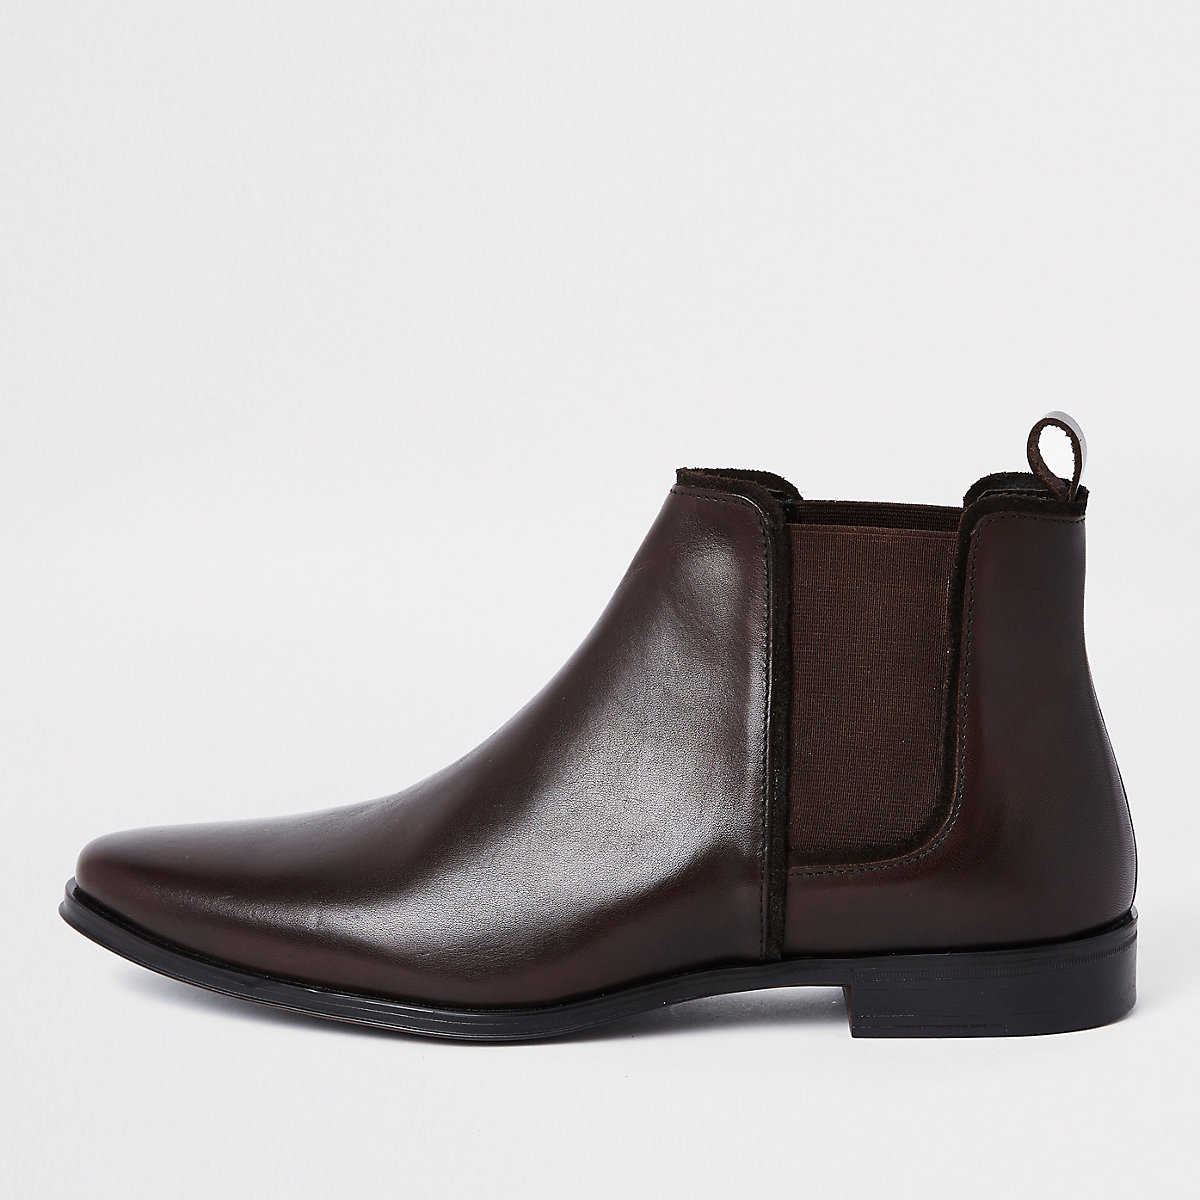 Chocolate brown leather chelsea boot